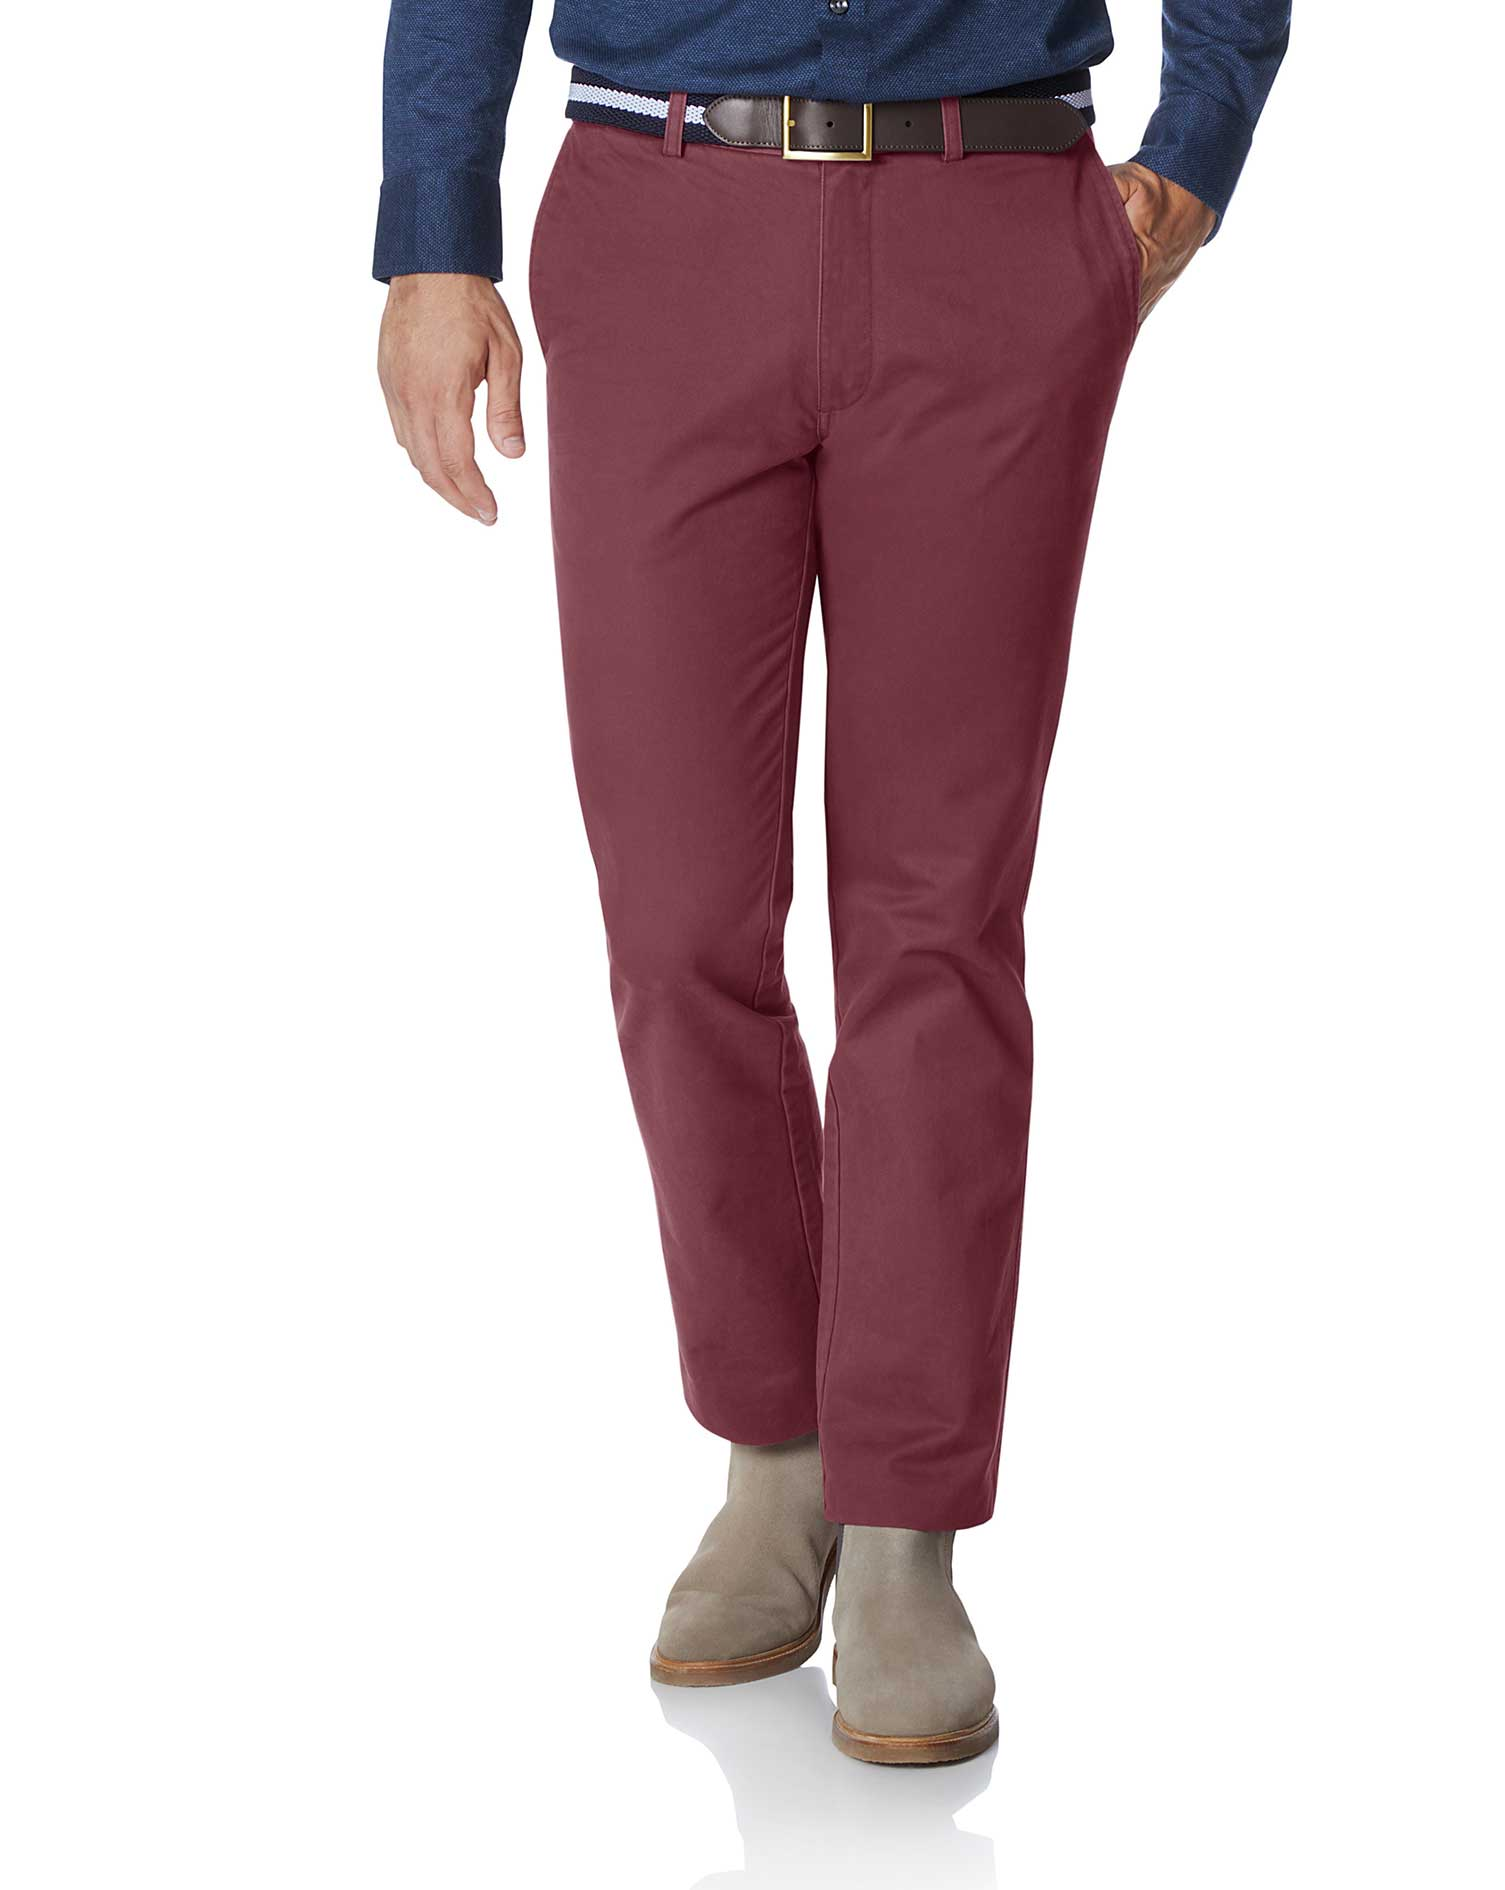 Dark Pink Classic Fit Flat Front Washed Cotton Chino Trousers Size W36 L29 by Charles Tyrwhitt